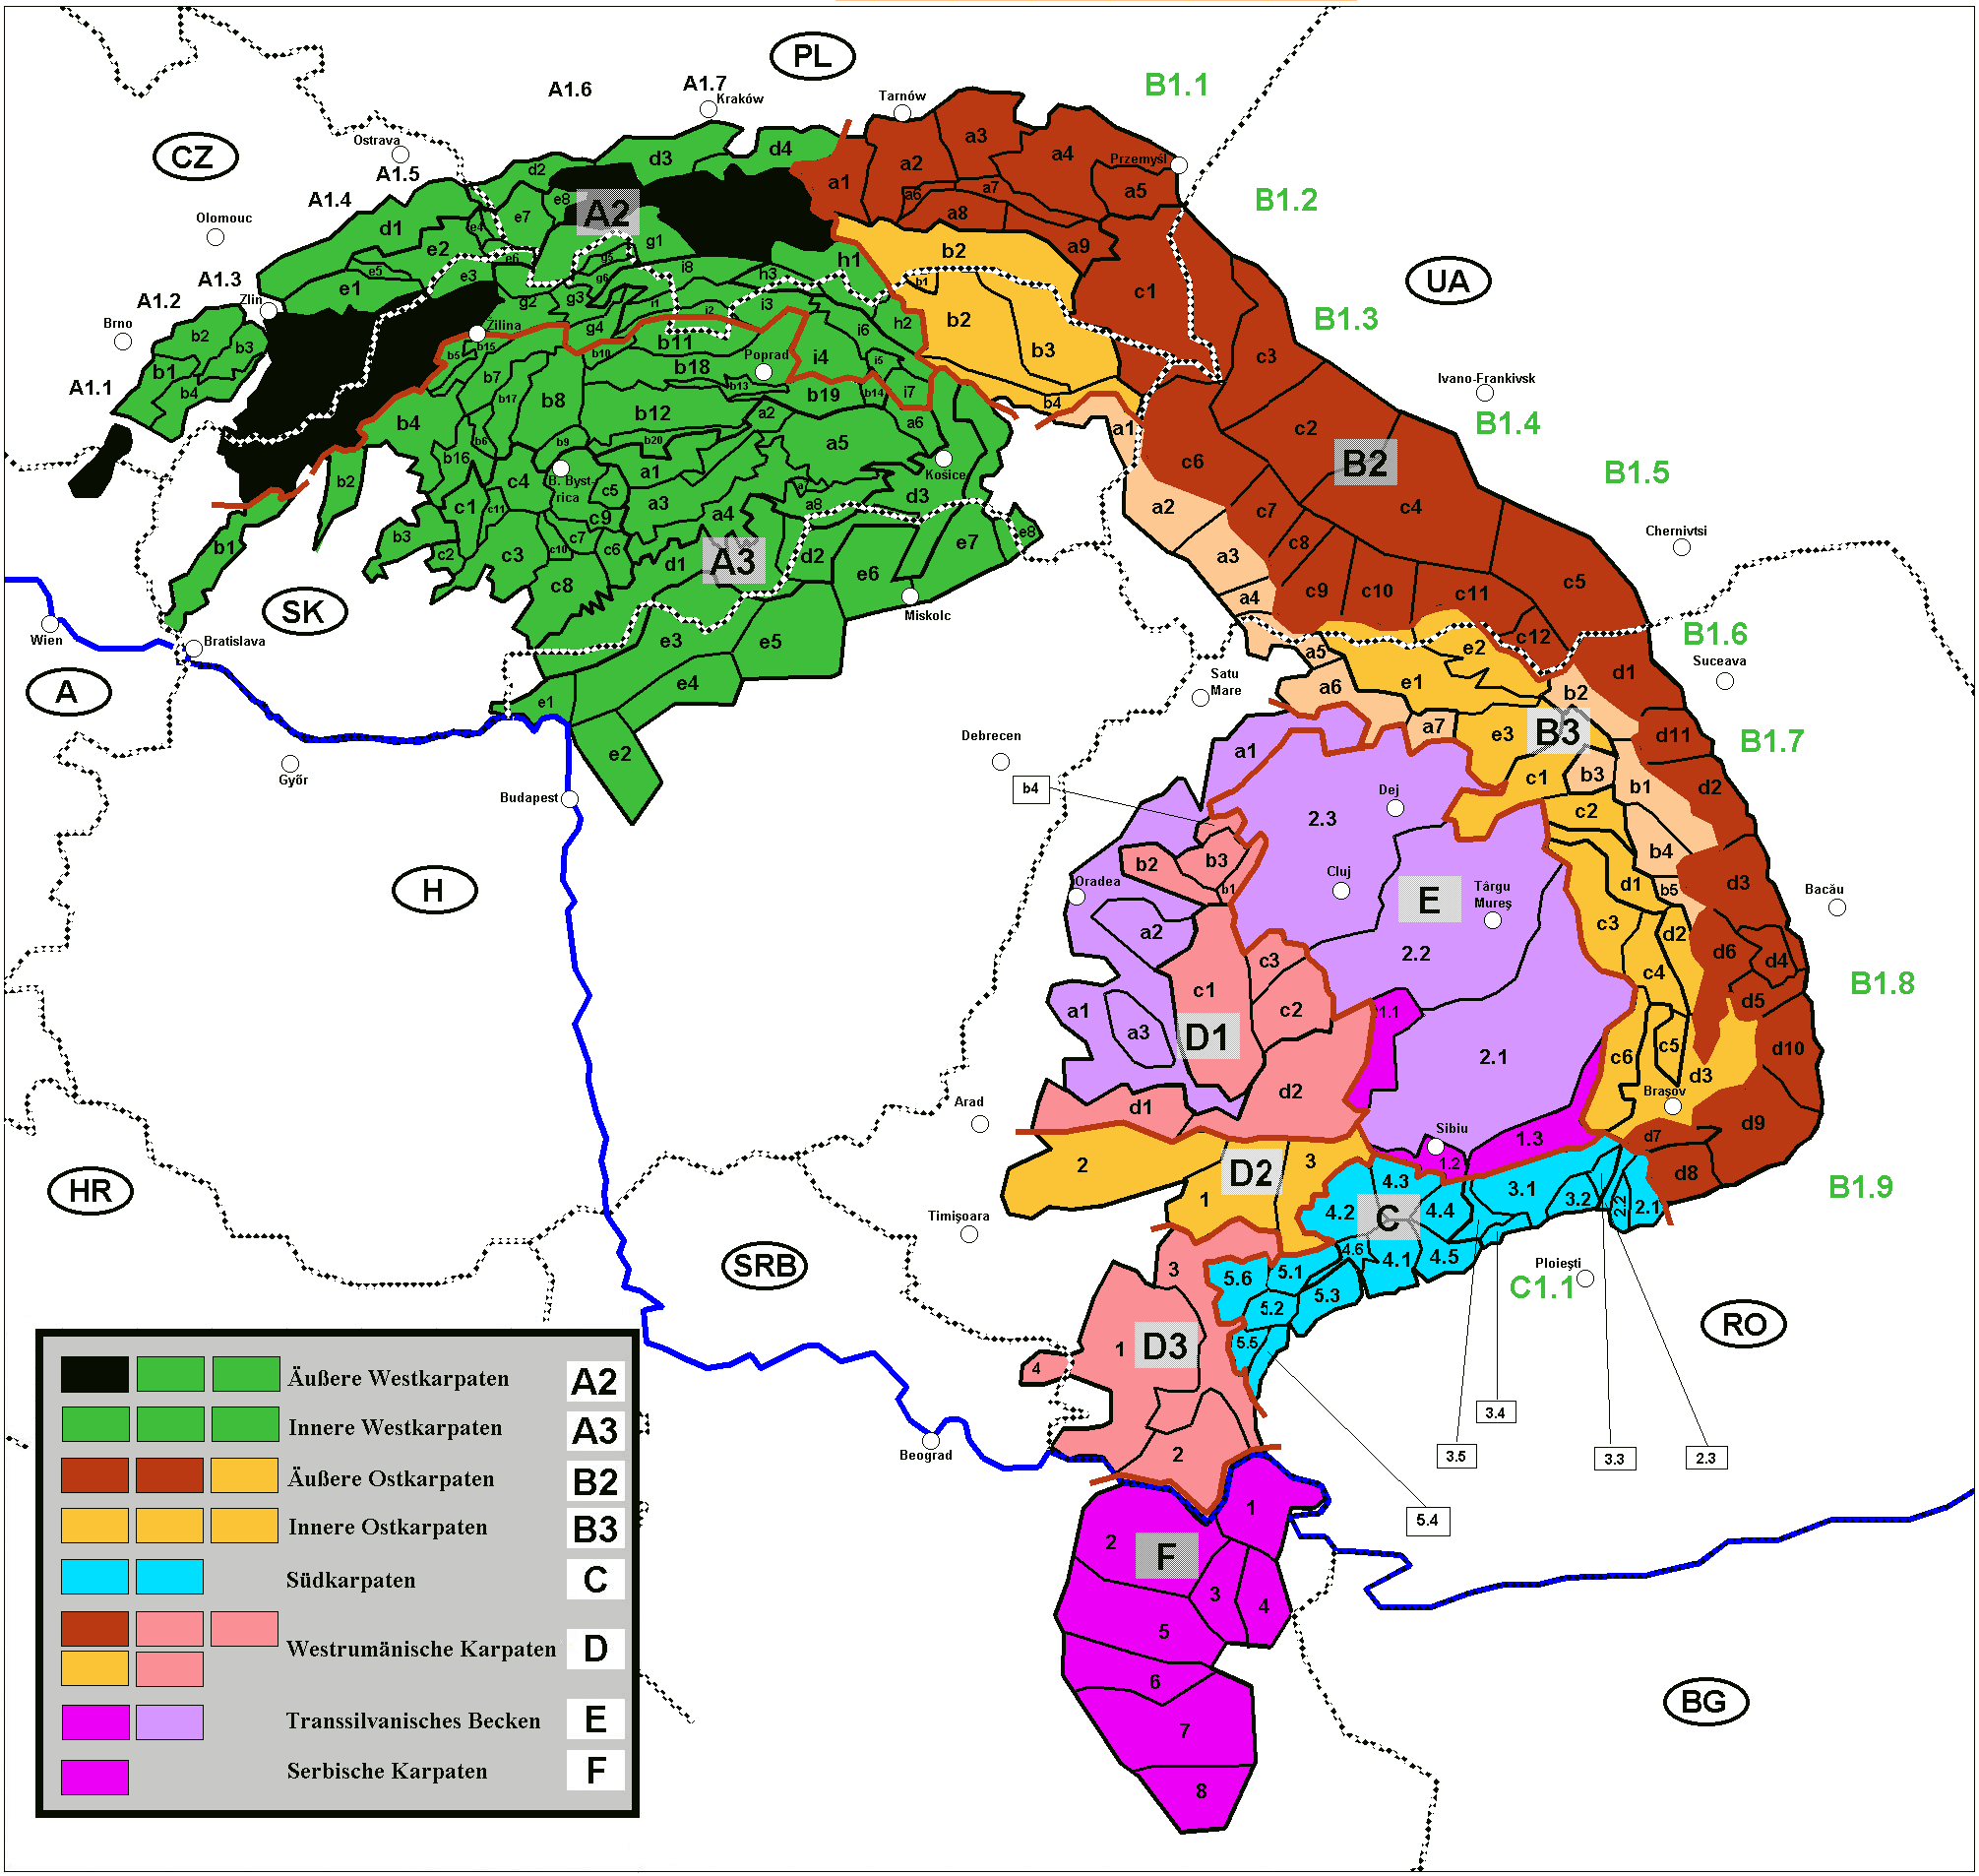 Divisions of the Carpathians